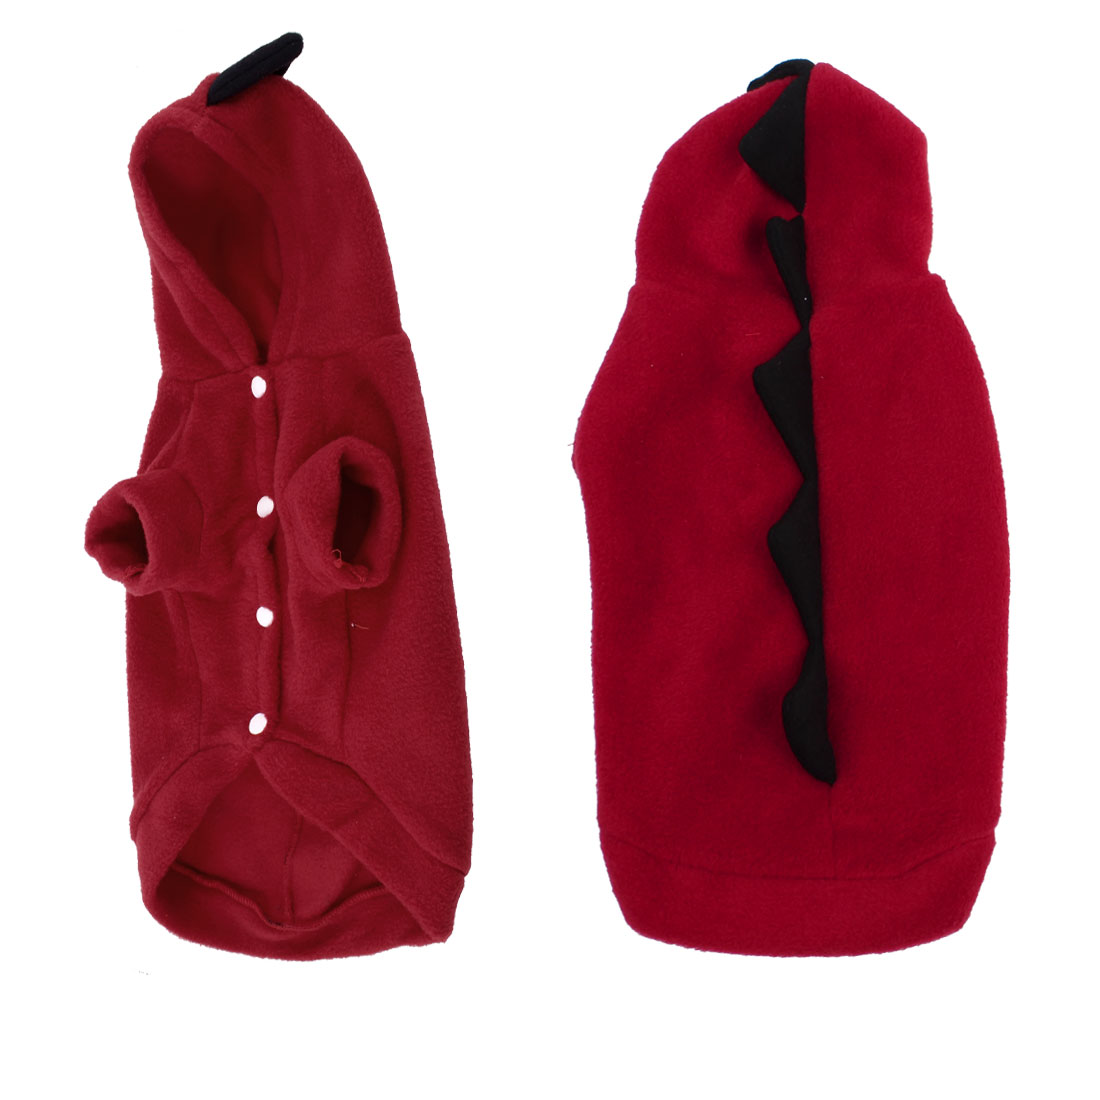 Short Sleeves Single Breasted Doggy Poodle Pet Hooded Coat Winter Clothes Red L